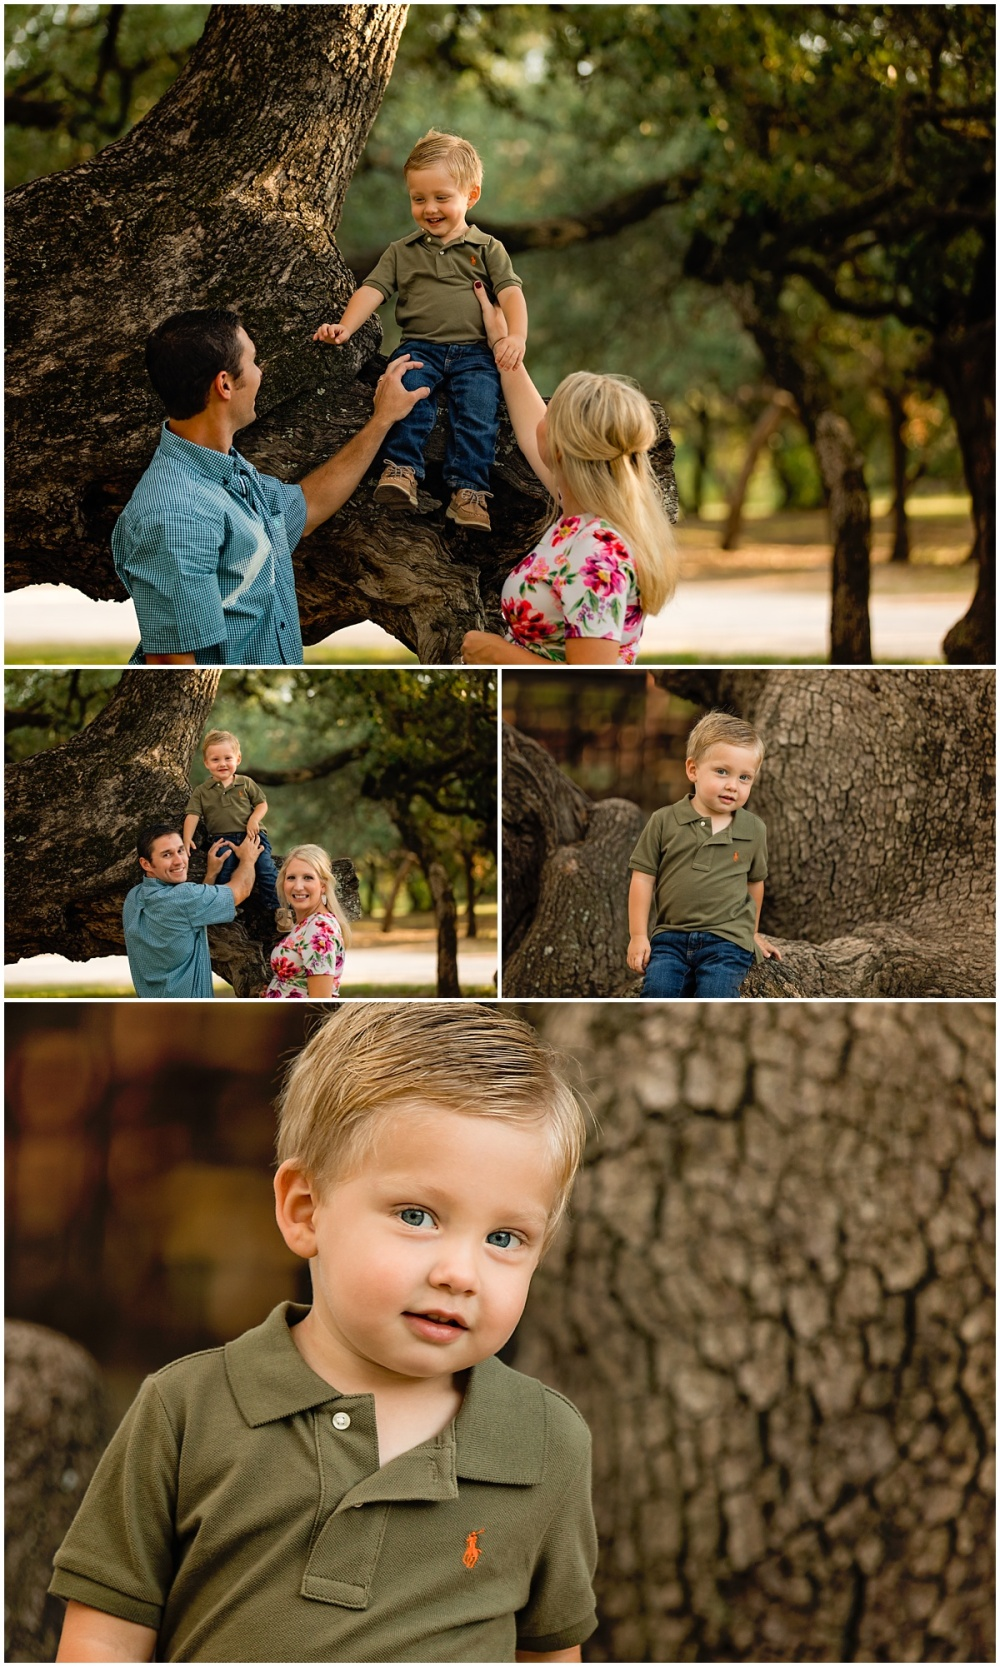 Family-Children-Maternity-Portraits-San-Antonio-Hill-Country-Texas-Carly-Barton-Photography_0002.jpg